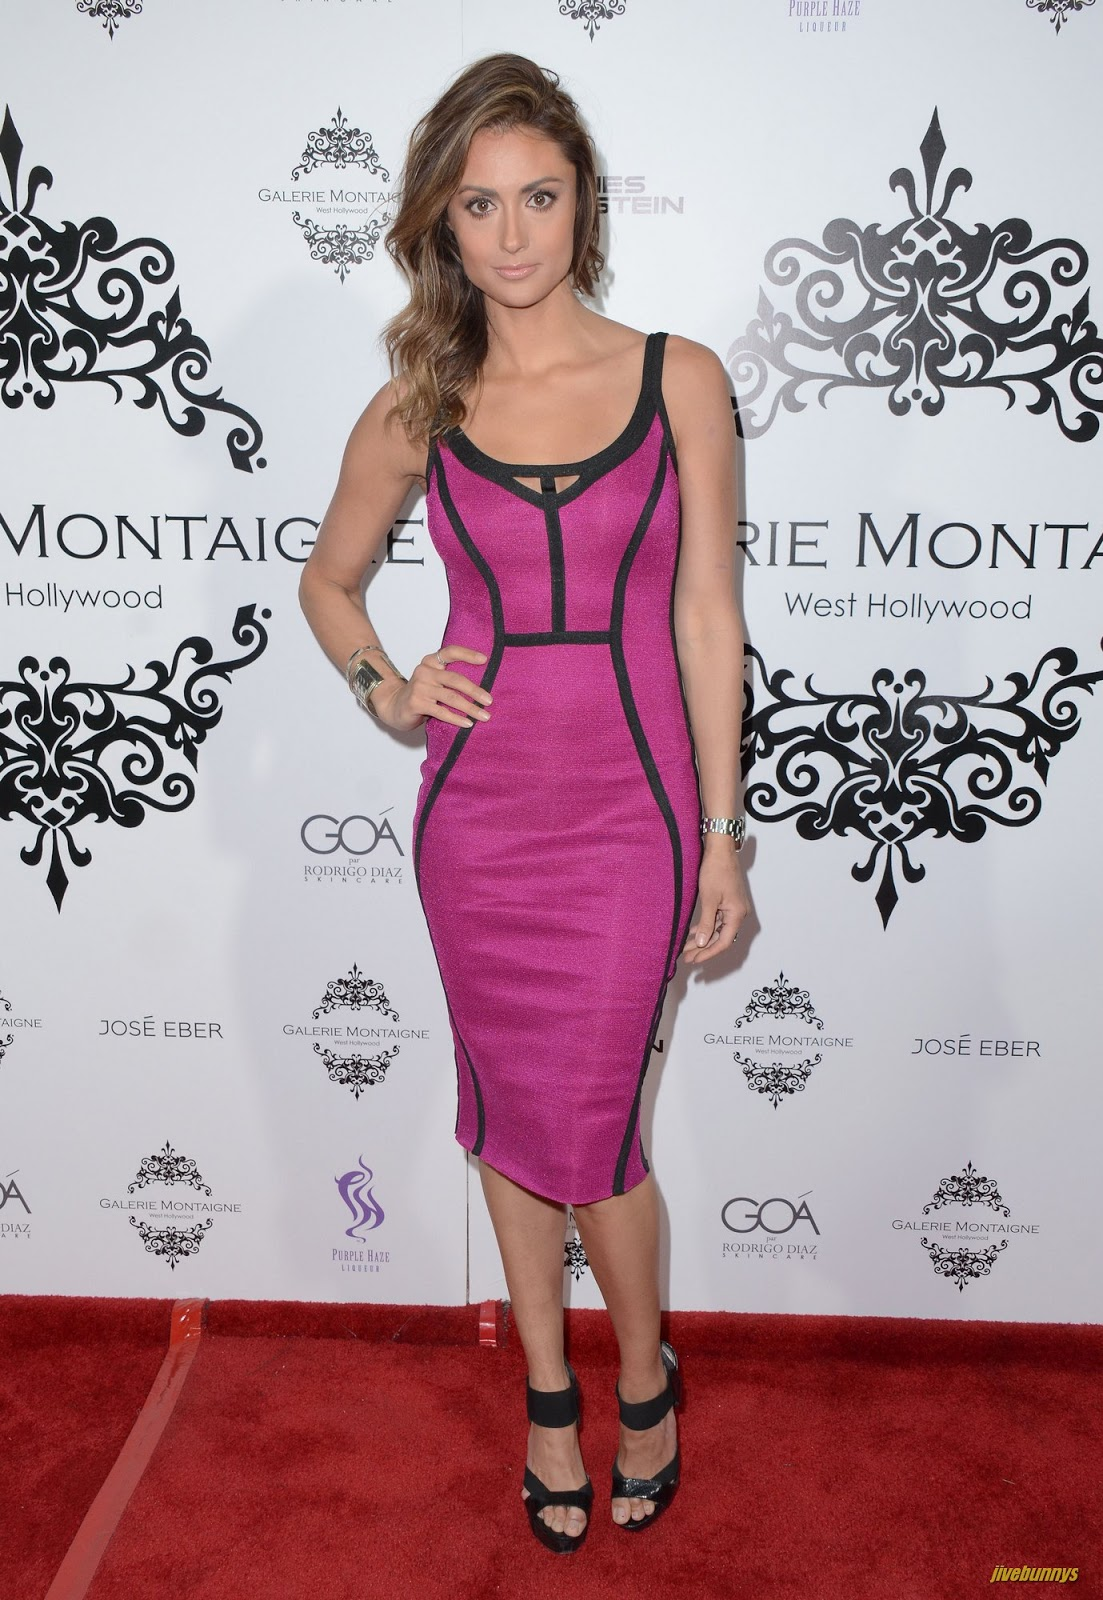 Jivebunnys Female Celebrity Picture Gallery: Katie Cleary Celebrity ...